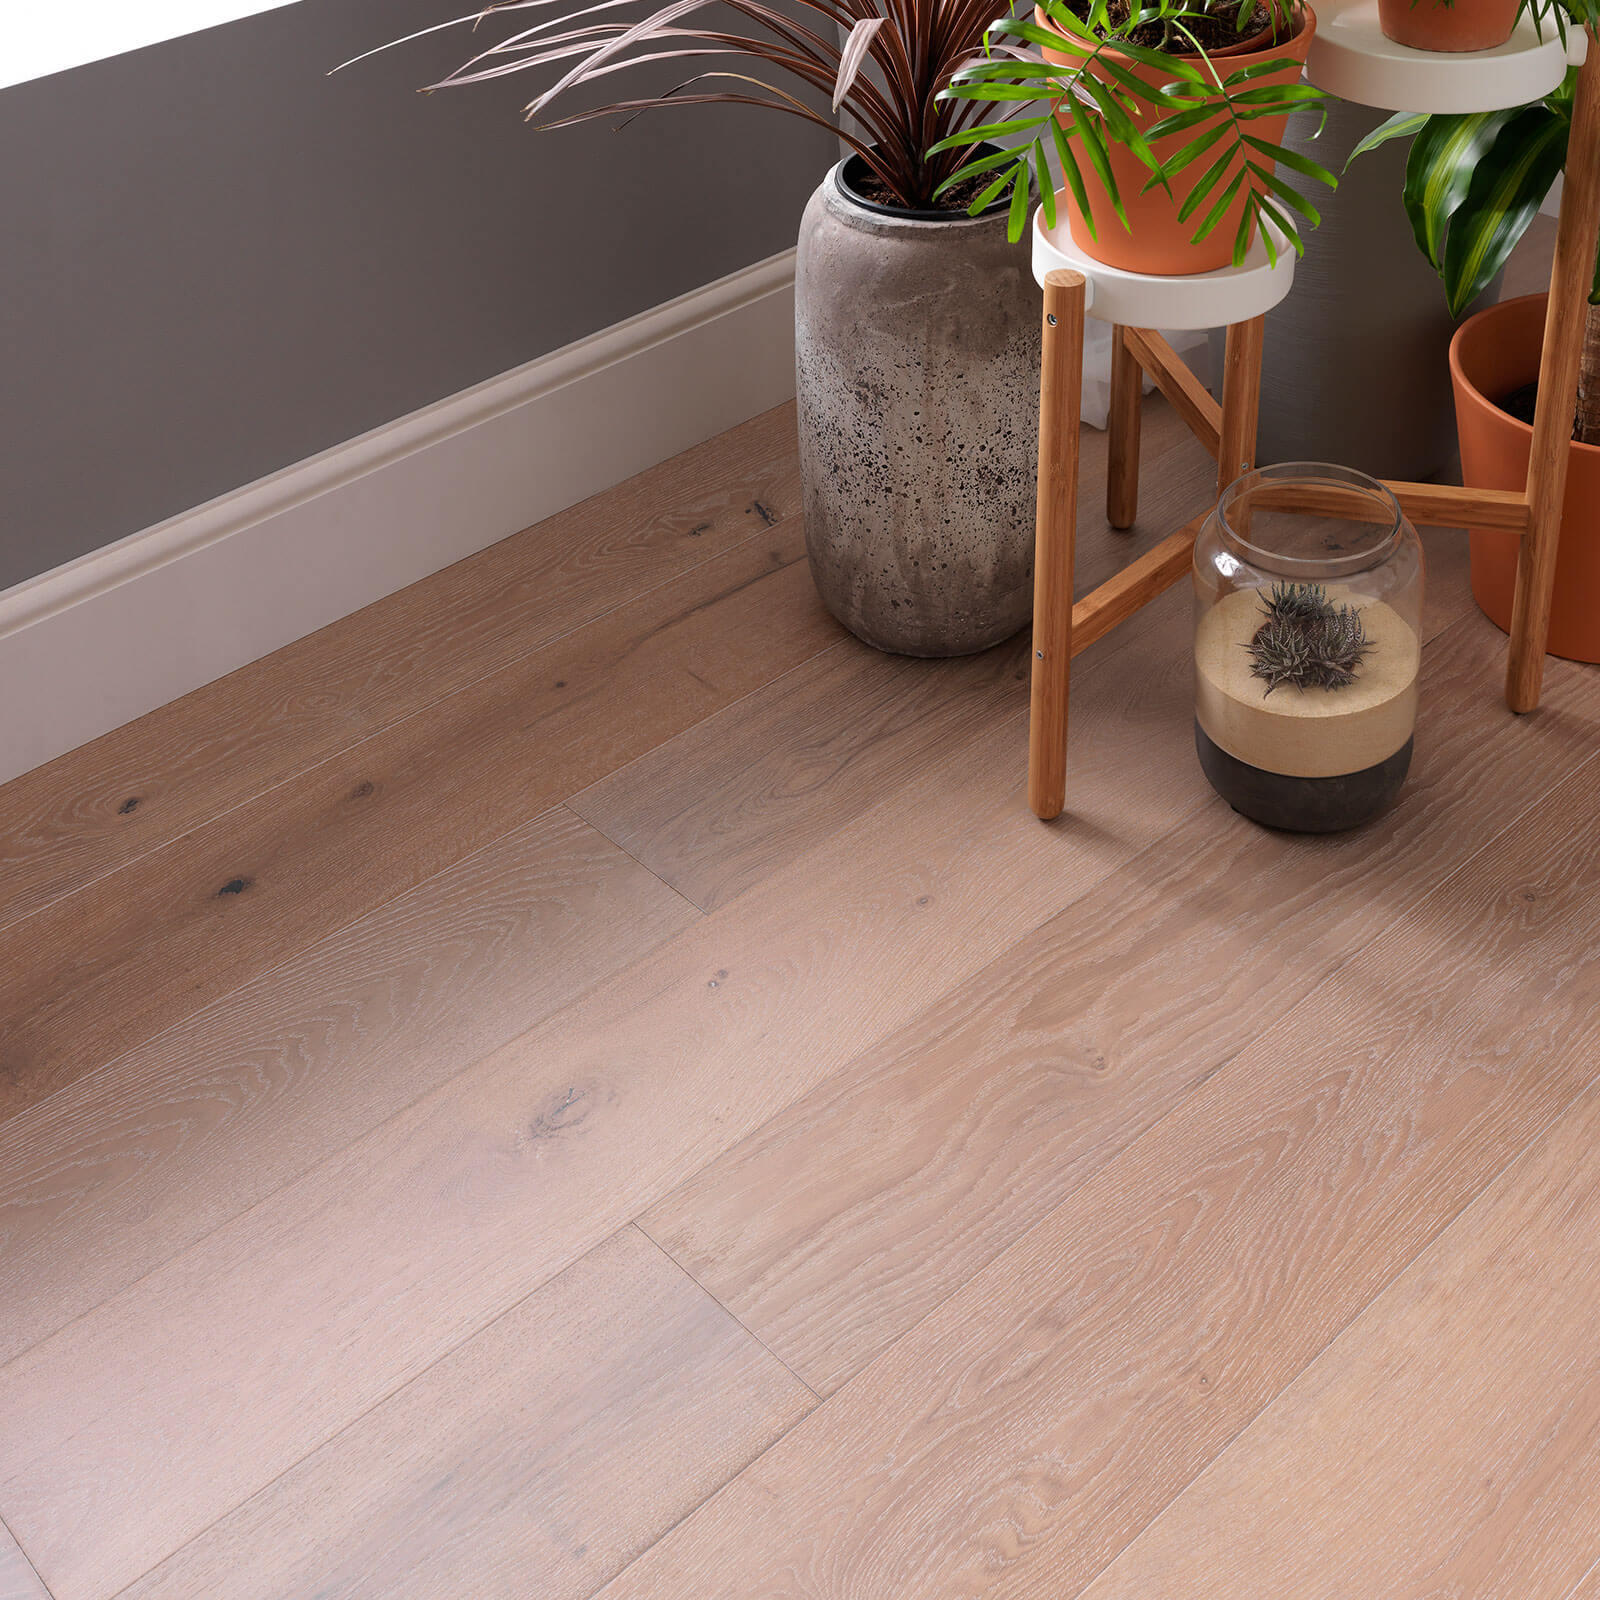 Woodpecker Salcombe Seashore Oak Brushed & Matt Lacquered 45-WDG-013 Engineered Wood Flooring